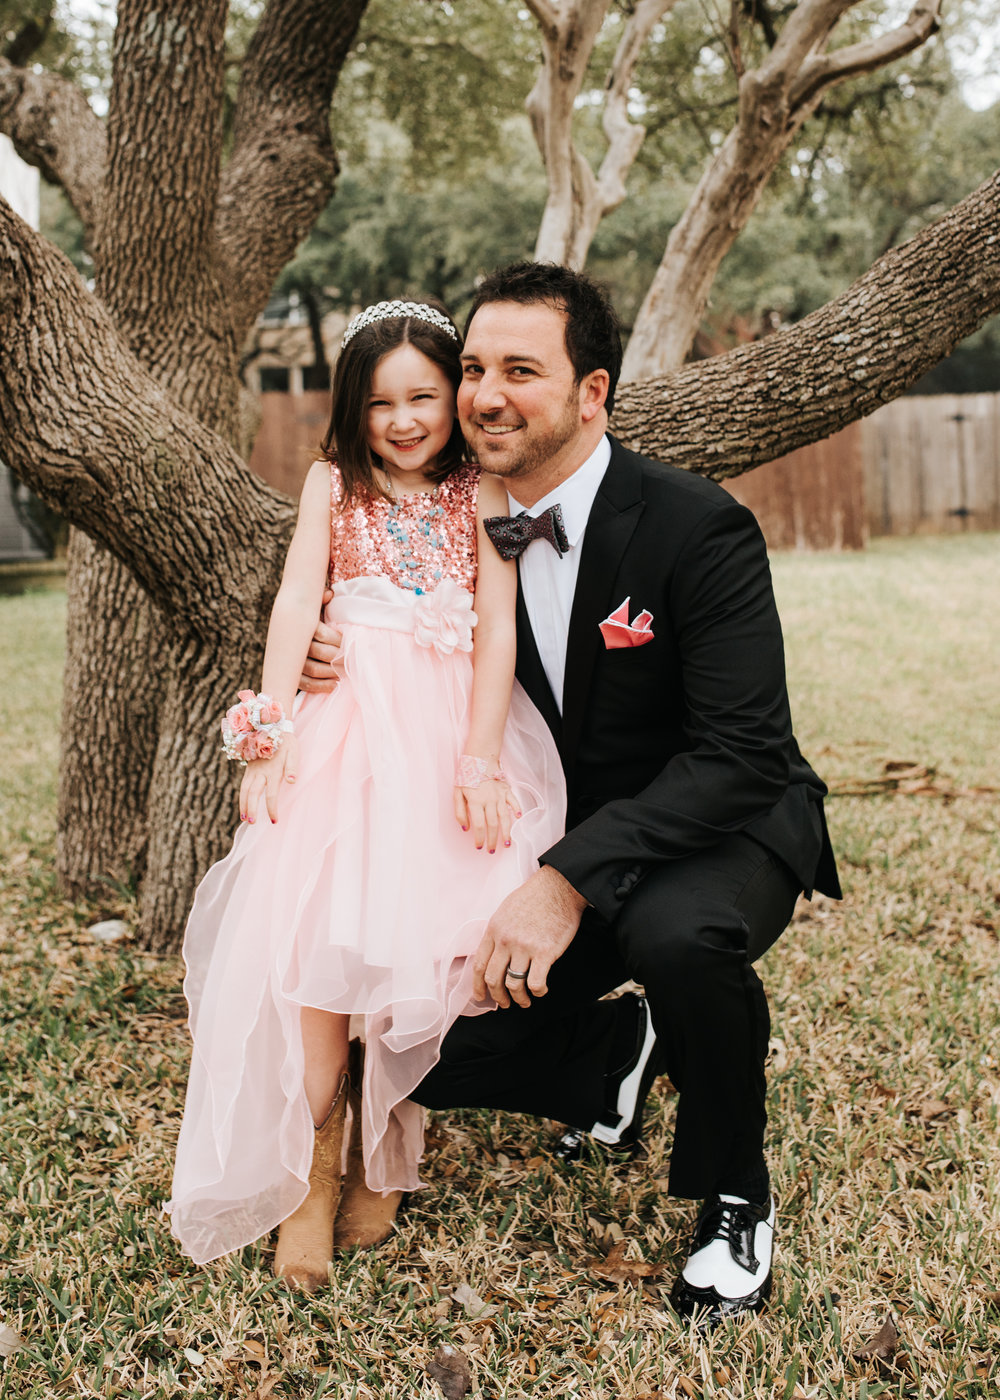 Daddy Daughter Dance-Austin Event Photography-Round Rock Event Photography-Emily Ingalls Photography-Pflugerville Event Photography-Georgetown-Event Photography